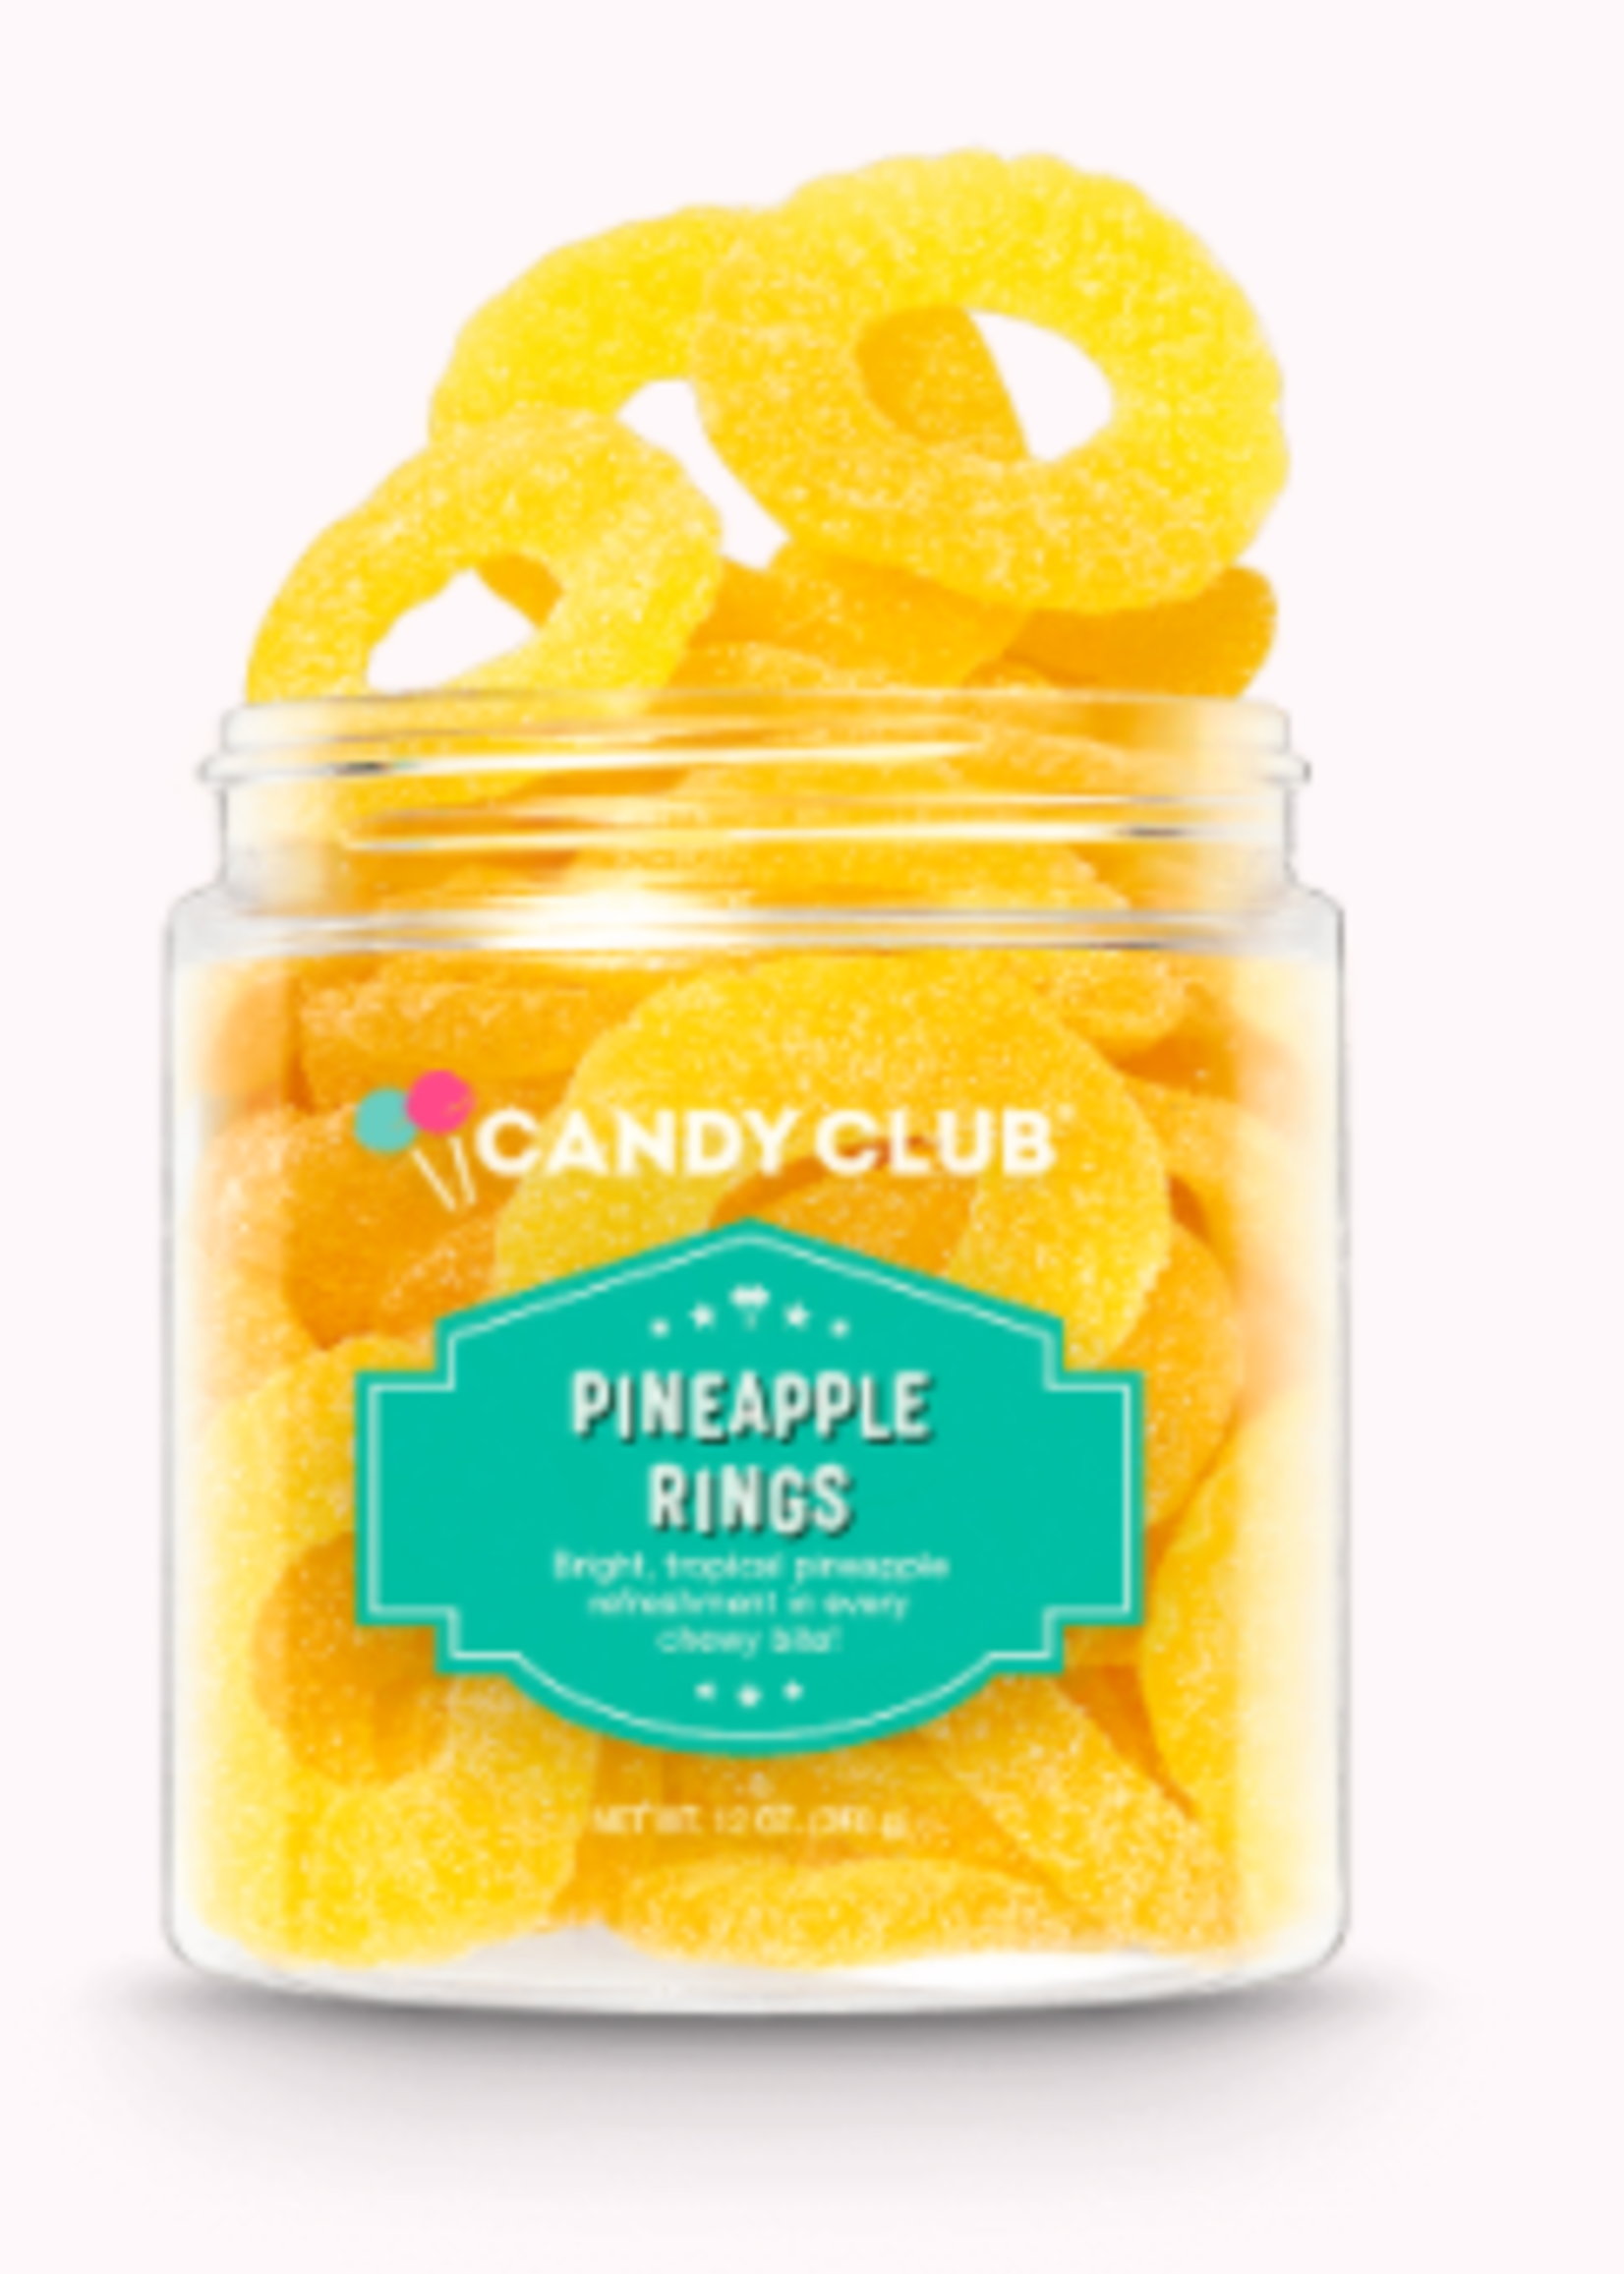 Pineapple Rings Candy